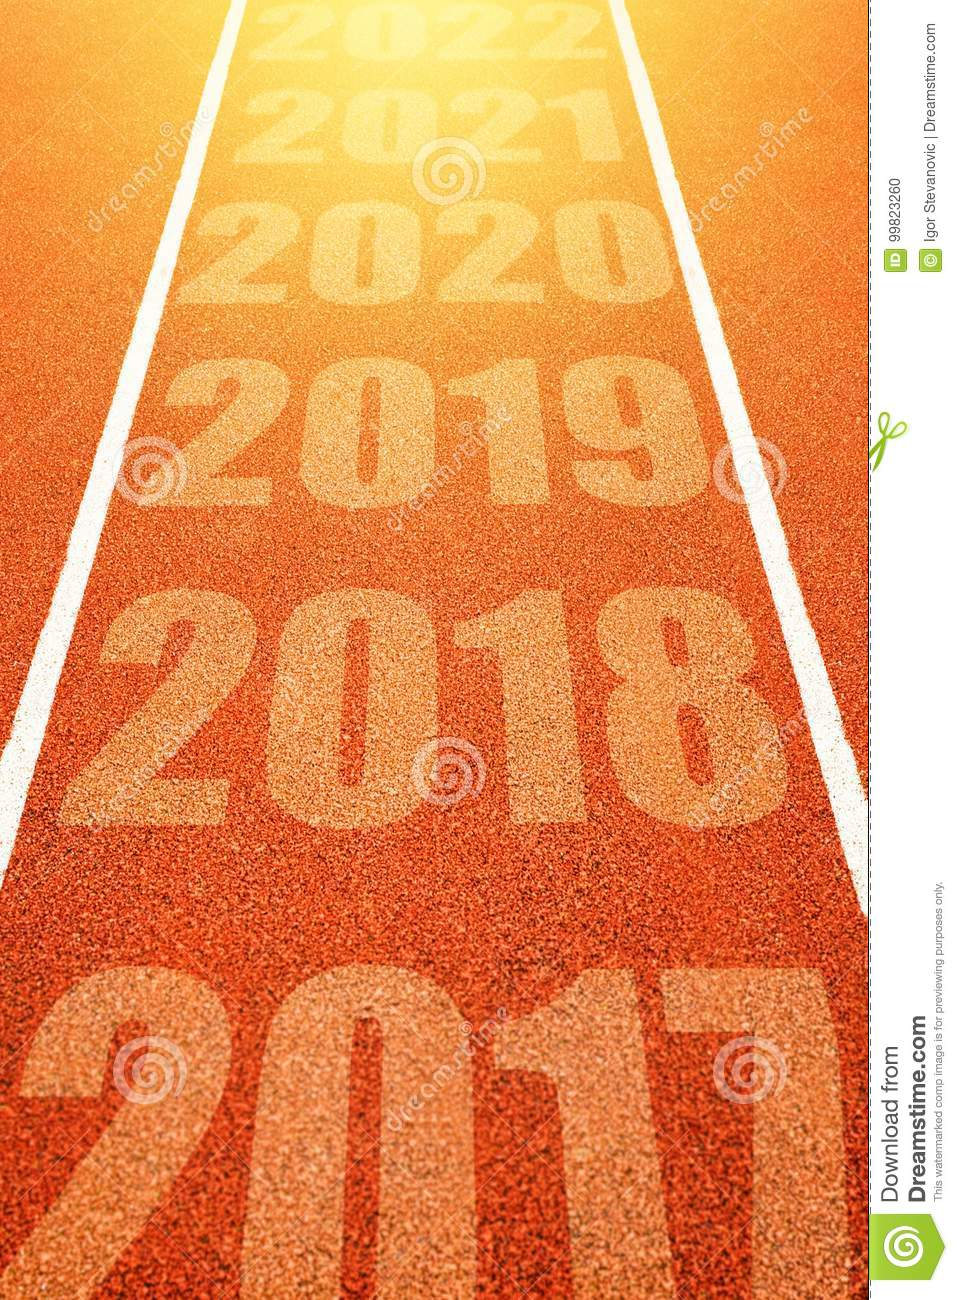 f30606ce2f283 Happy New Year 2018 stock photo. Image of distance